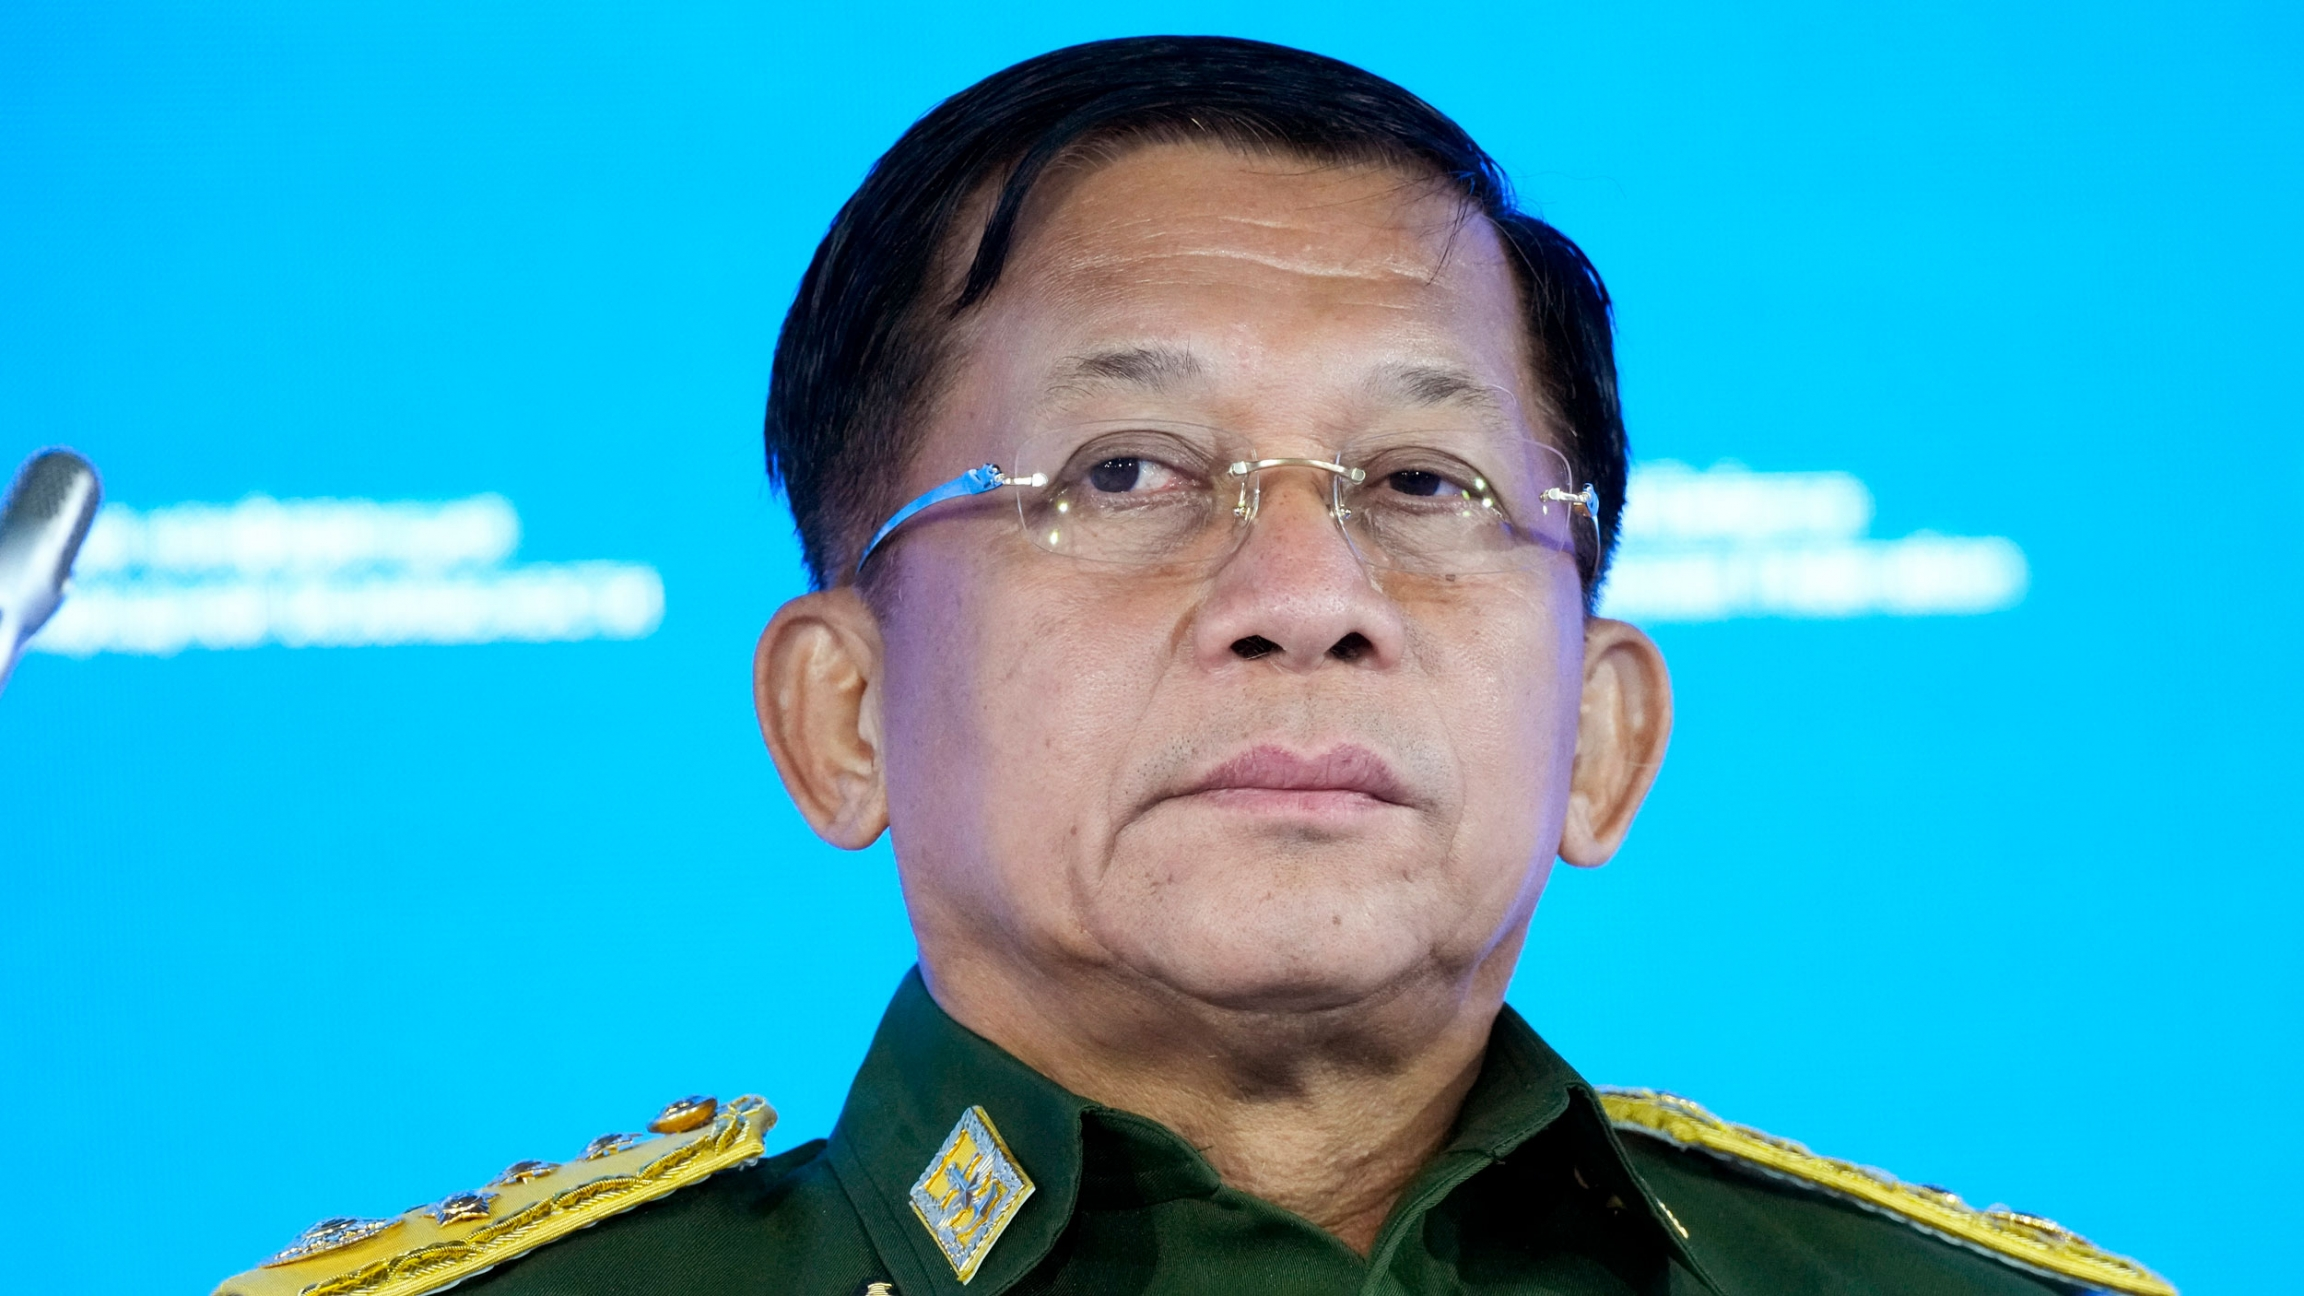 Commander-in-Chief of Myanmar's armed forces, Senior General Min Aung Hlaing delivers his speech at the IX Moscow conference on international security in Moscow, Russia.